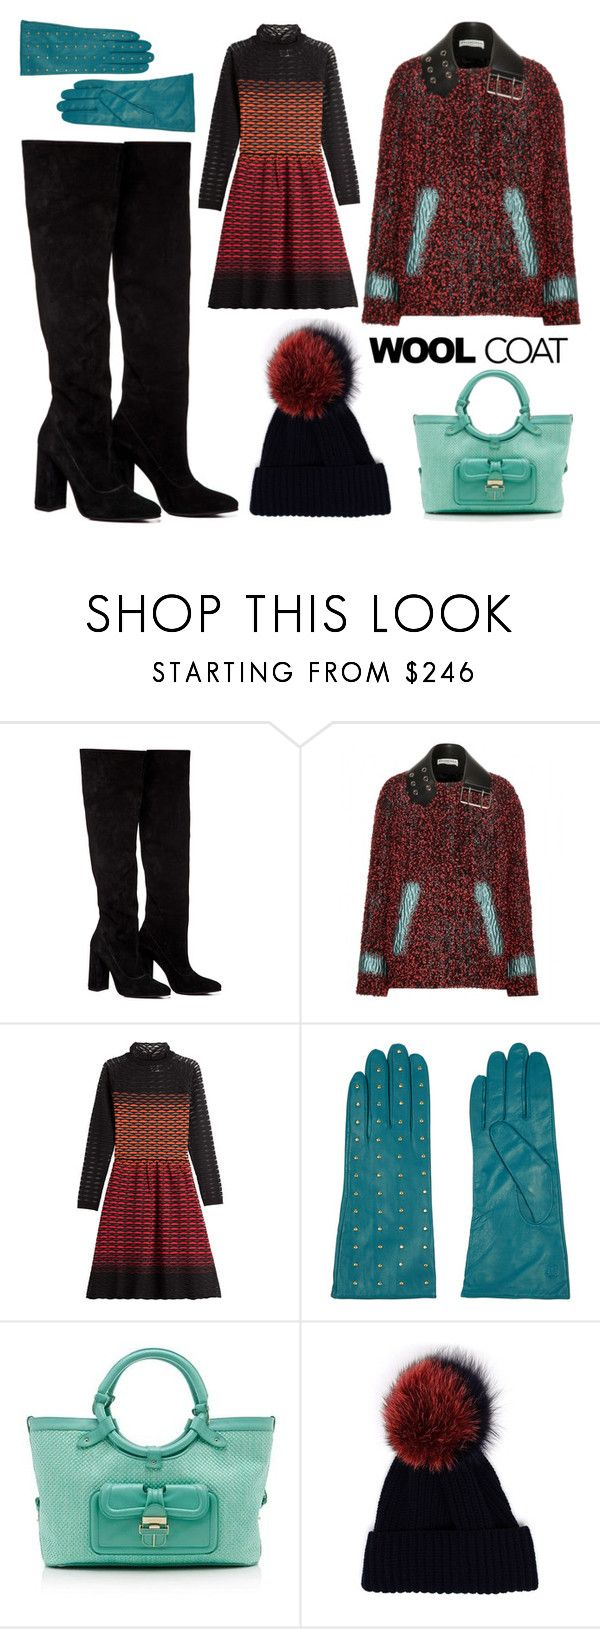 """Aqua + Wool + Winter"" by leiastyle on Polyvore featuring Anouki, Balenciaga, M Missoni, Tory Burch, Jimmy Choo, Inverni, beanie, suedeboots and woolcoat"